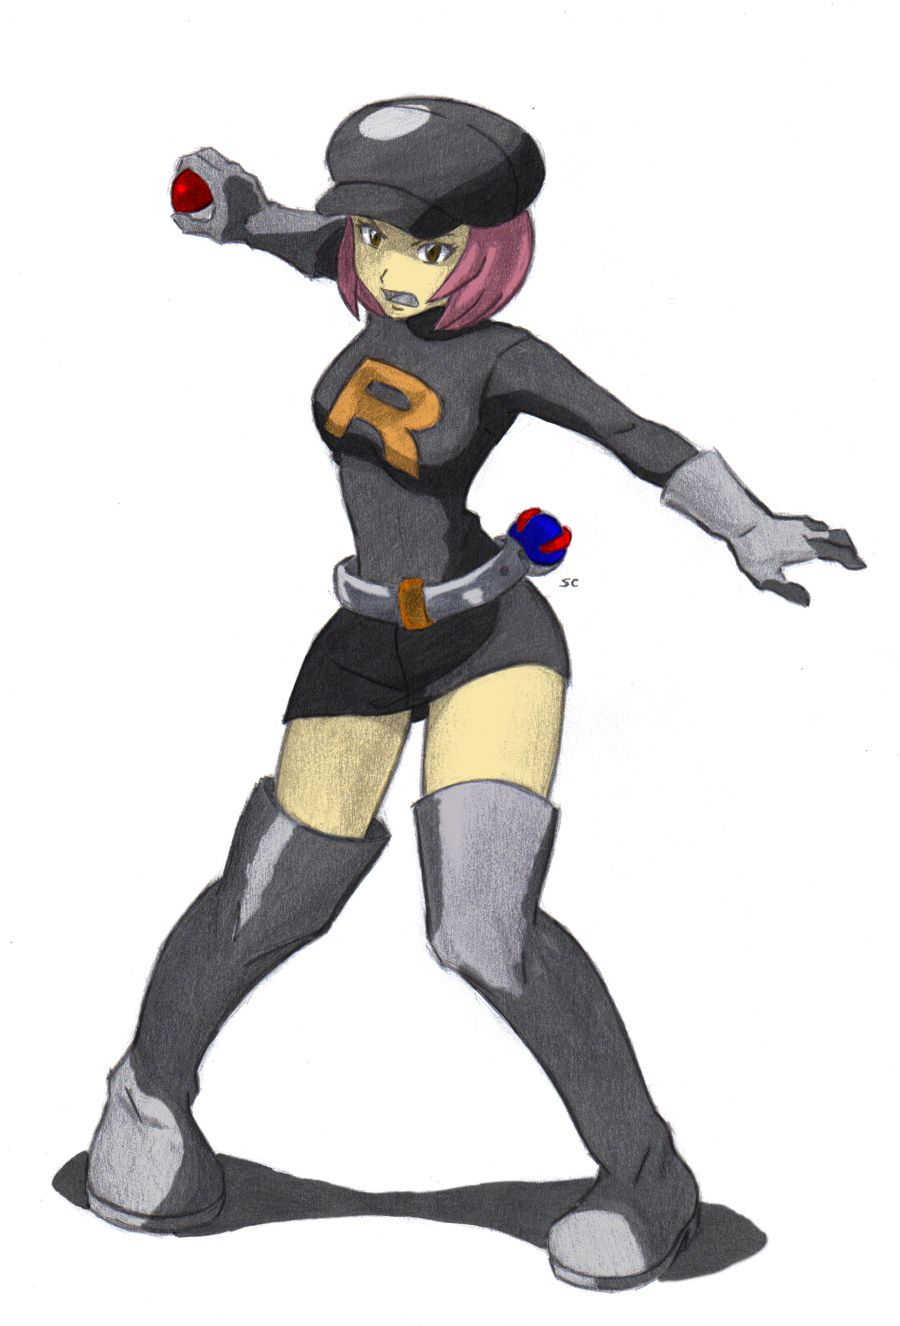 This Pokemon team rocket grunt hentai something is